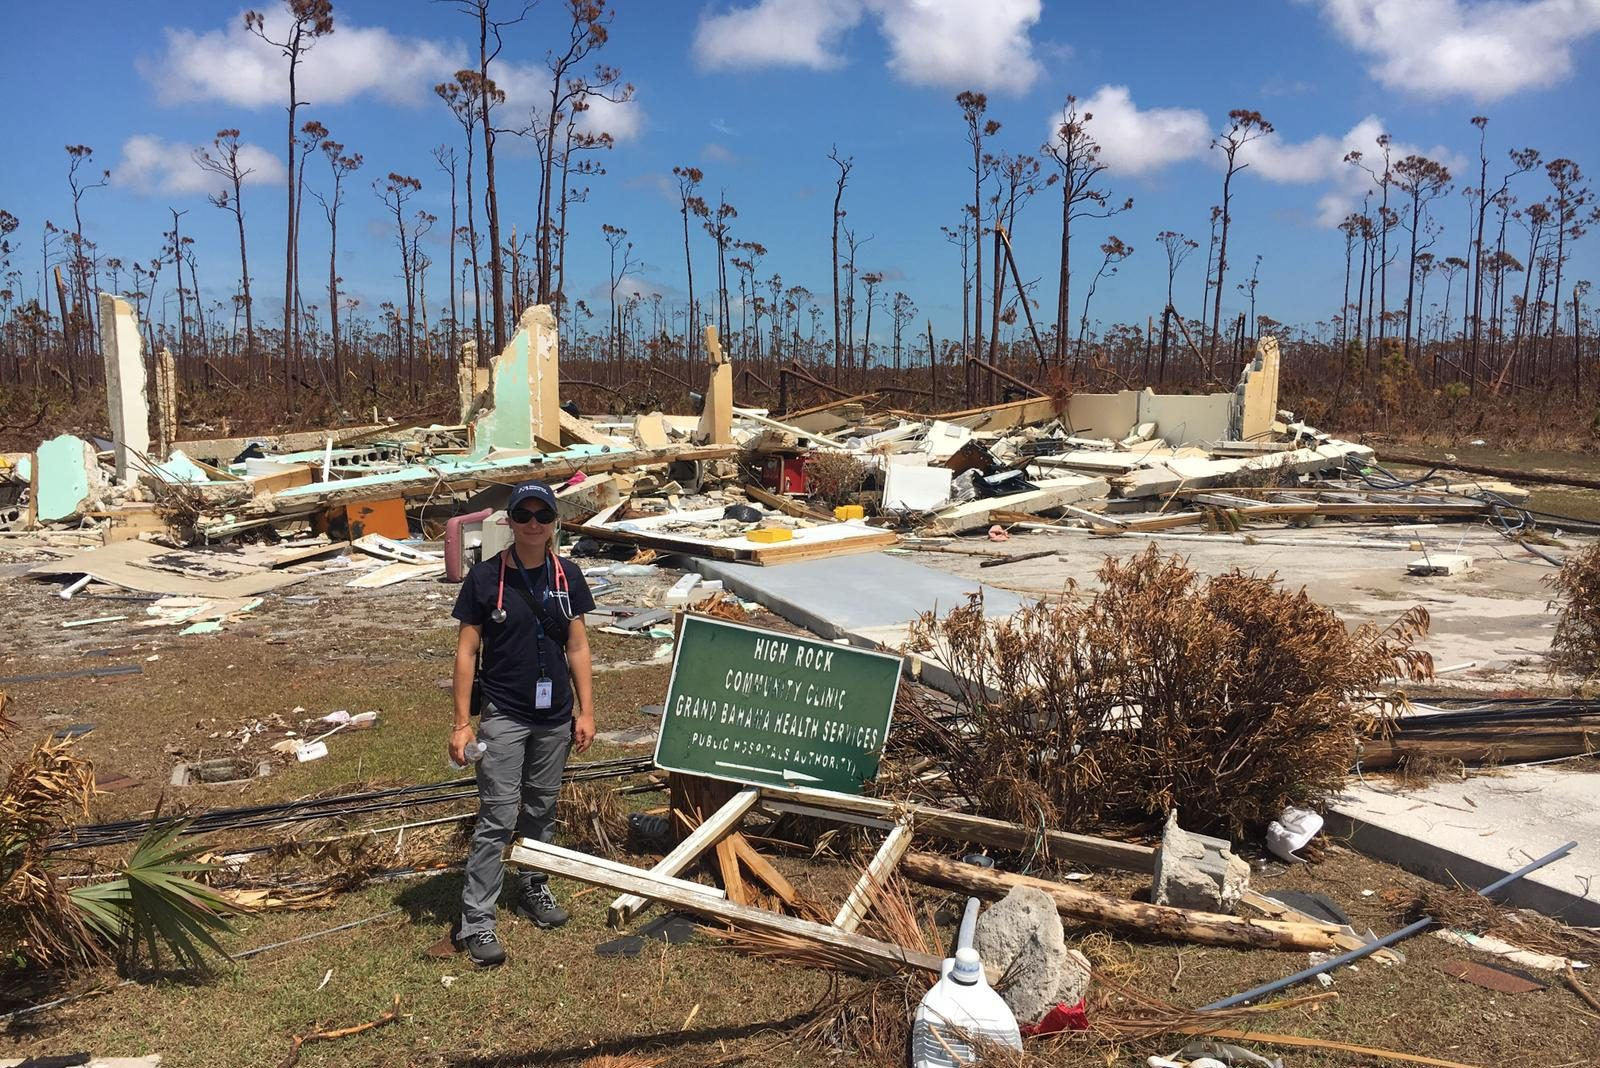 UConn's Dr. Natalie Moore in the Bahamas at the site where a hospital stood before Hurricane Dorian. Moore and Amanda Ramsdell from the UConn Health Emergency Department are working with the International Medical Corps, which is establishing a tent hospital to care for patients on Grand Bahama Island. (Submitted Photo)